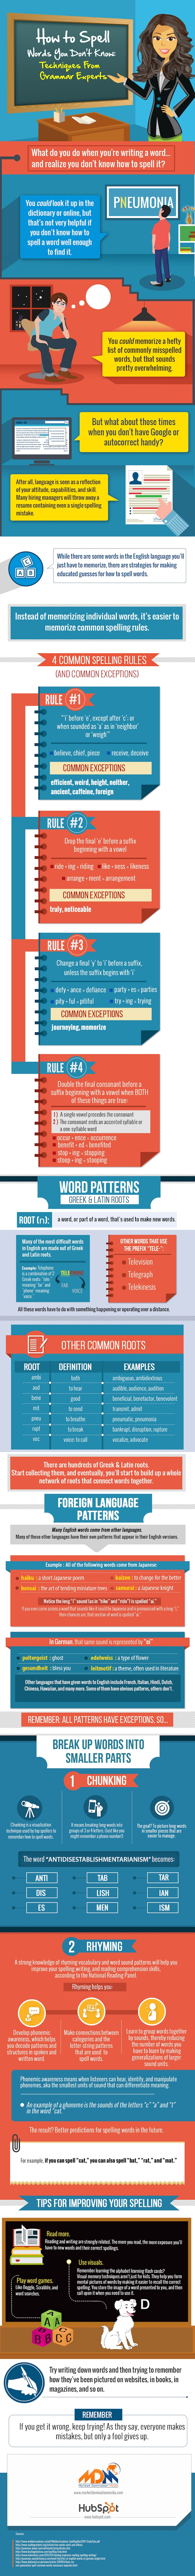 spelling-words-infographic